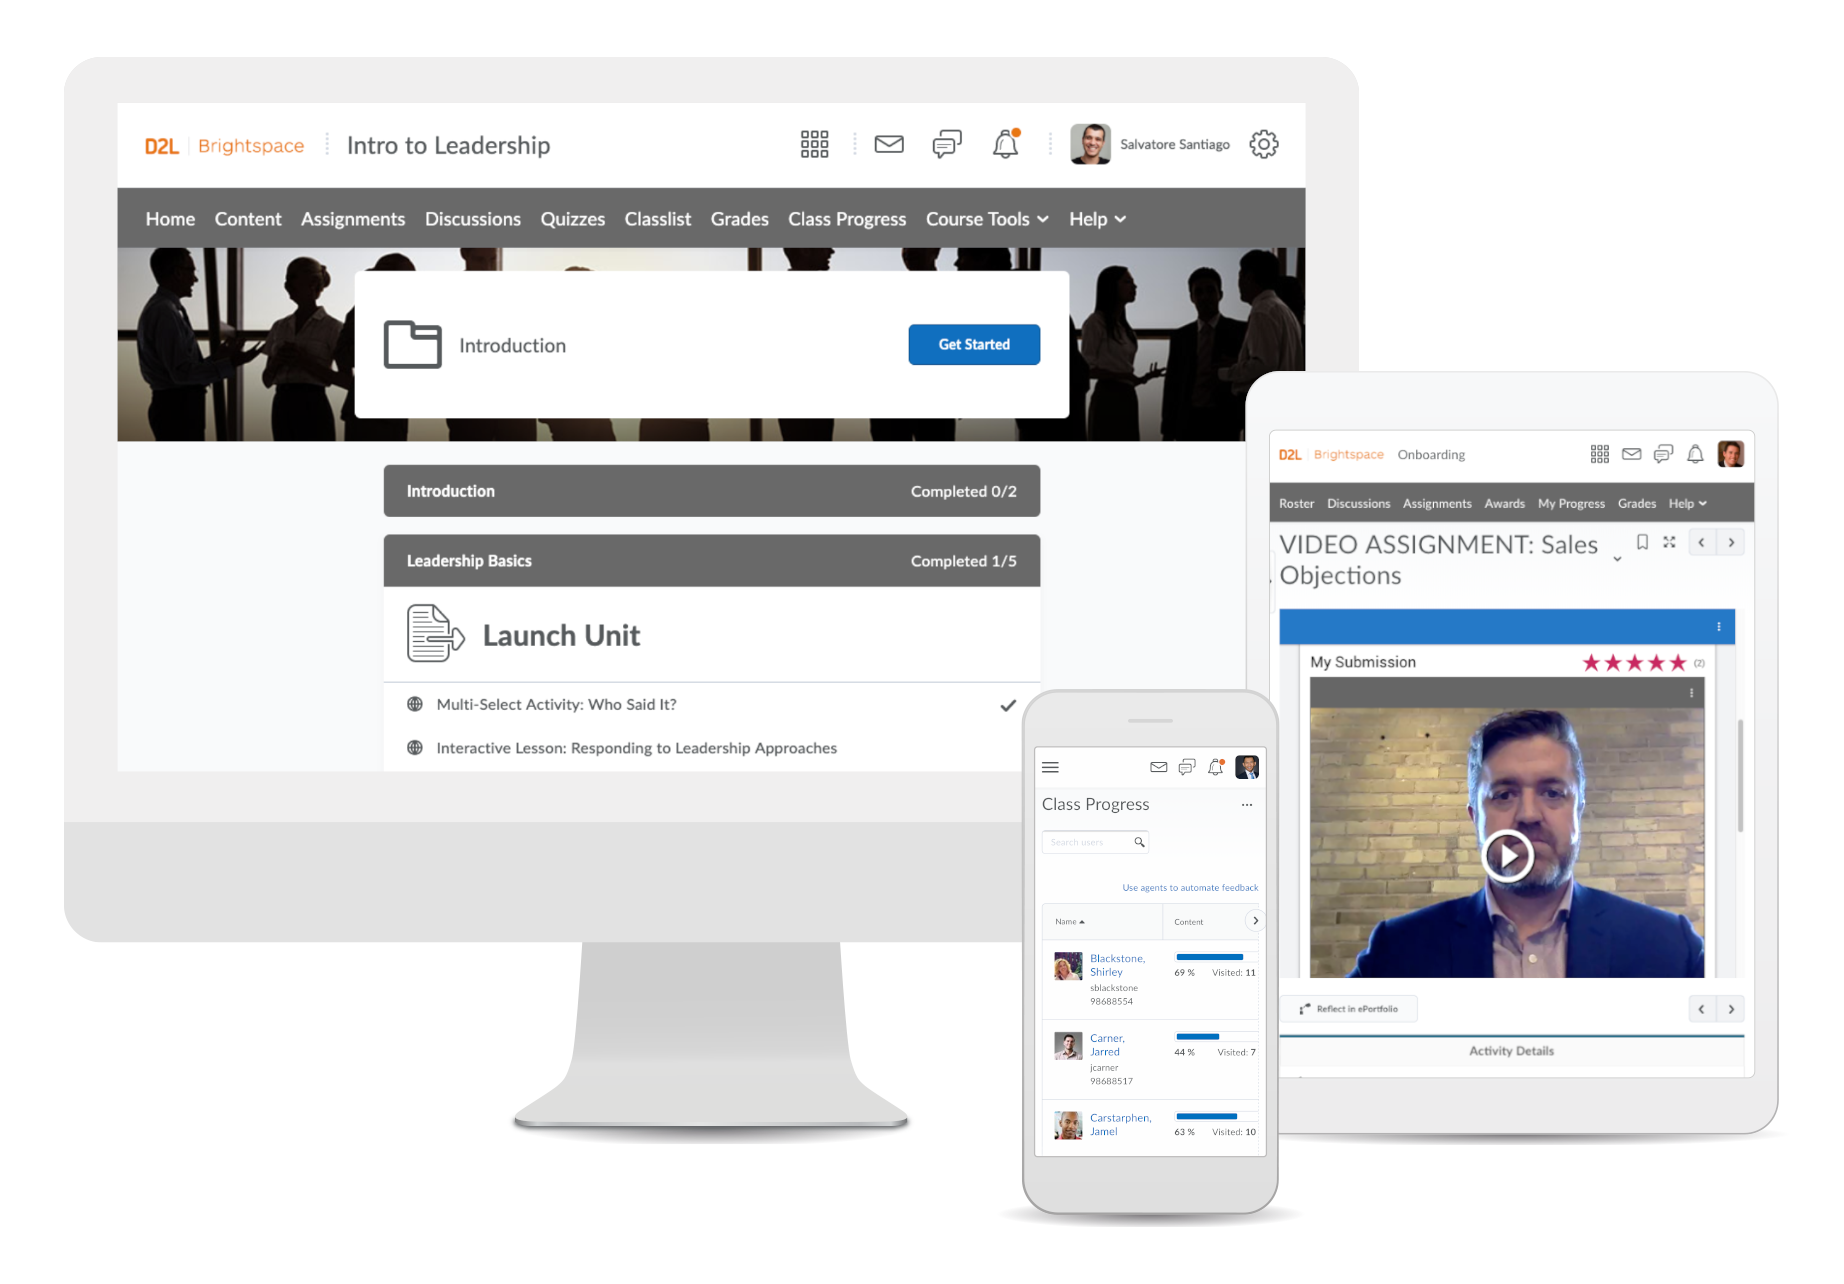 Brightspace learning platform for corporate